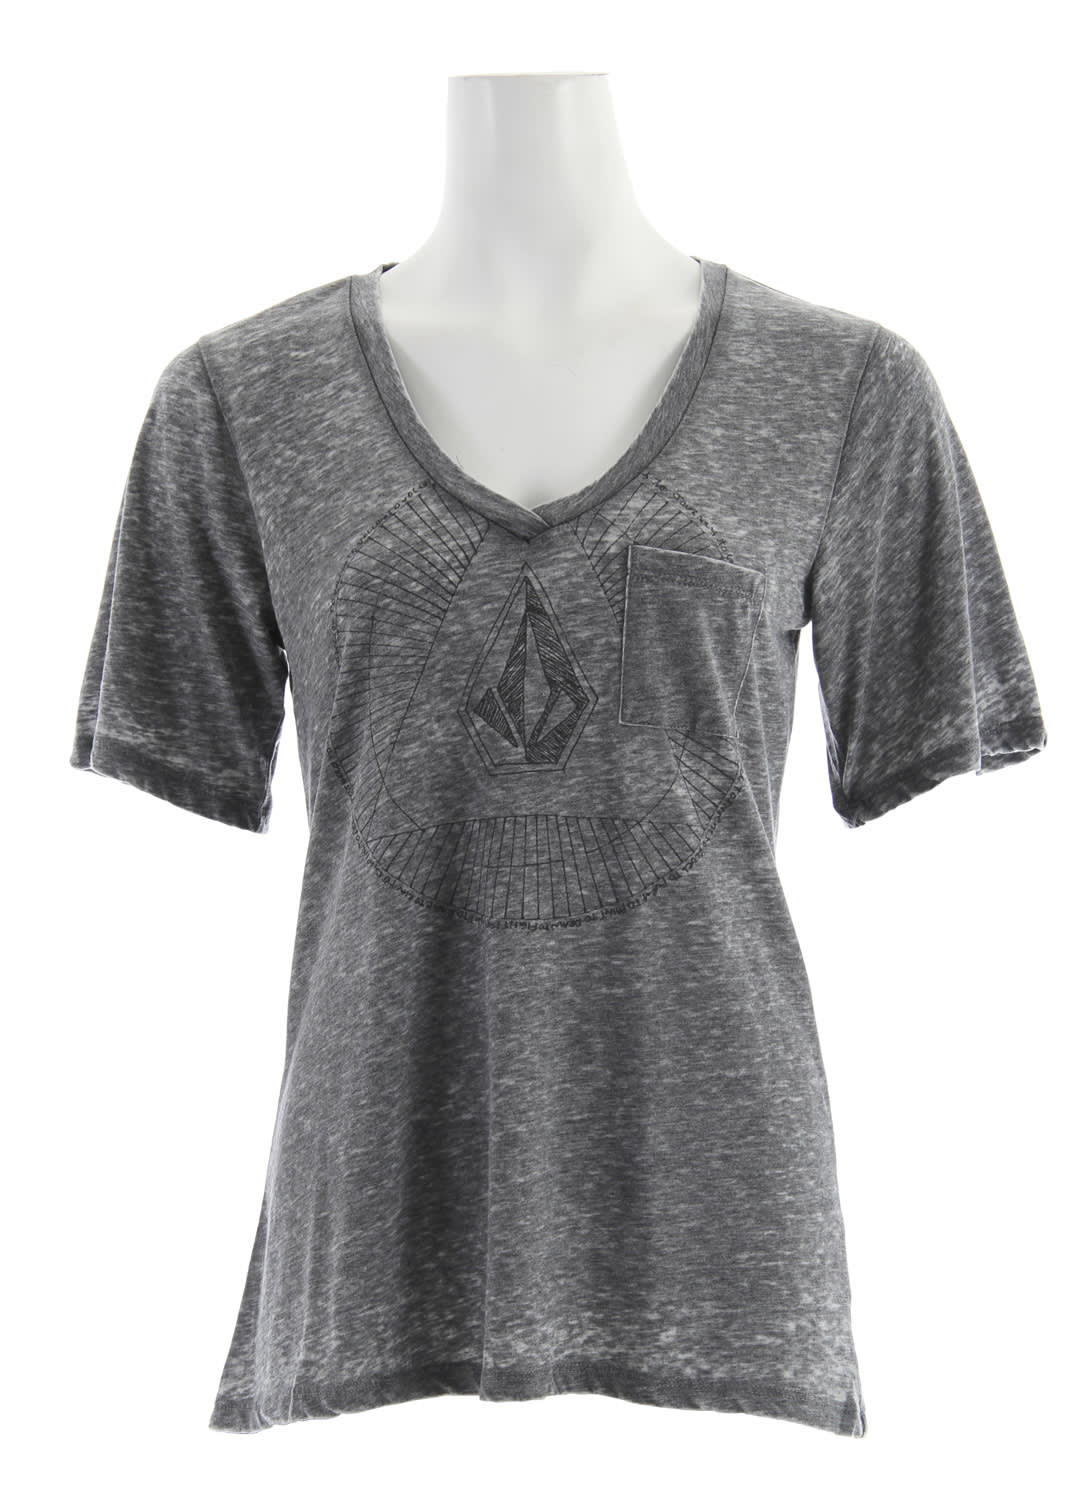 Shop for Volcom Dream Sphere Pocket T-Shirt Charcoal Heather - Women's